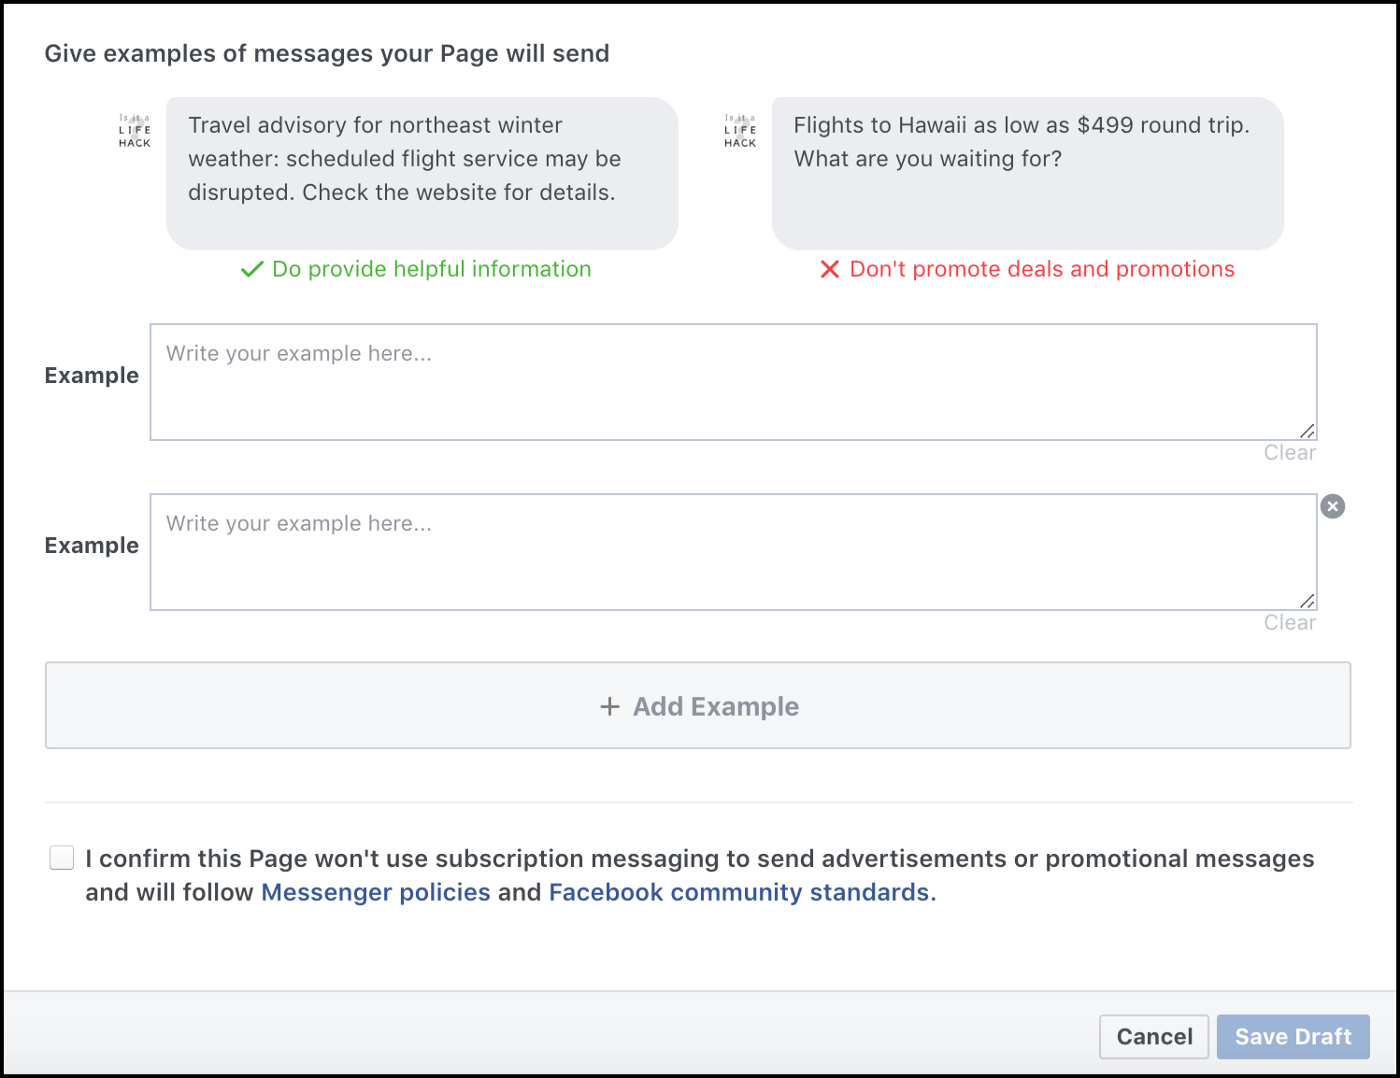 How to Apply (and Get Approved) for Facebook Subscription Messaging